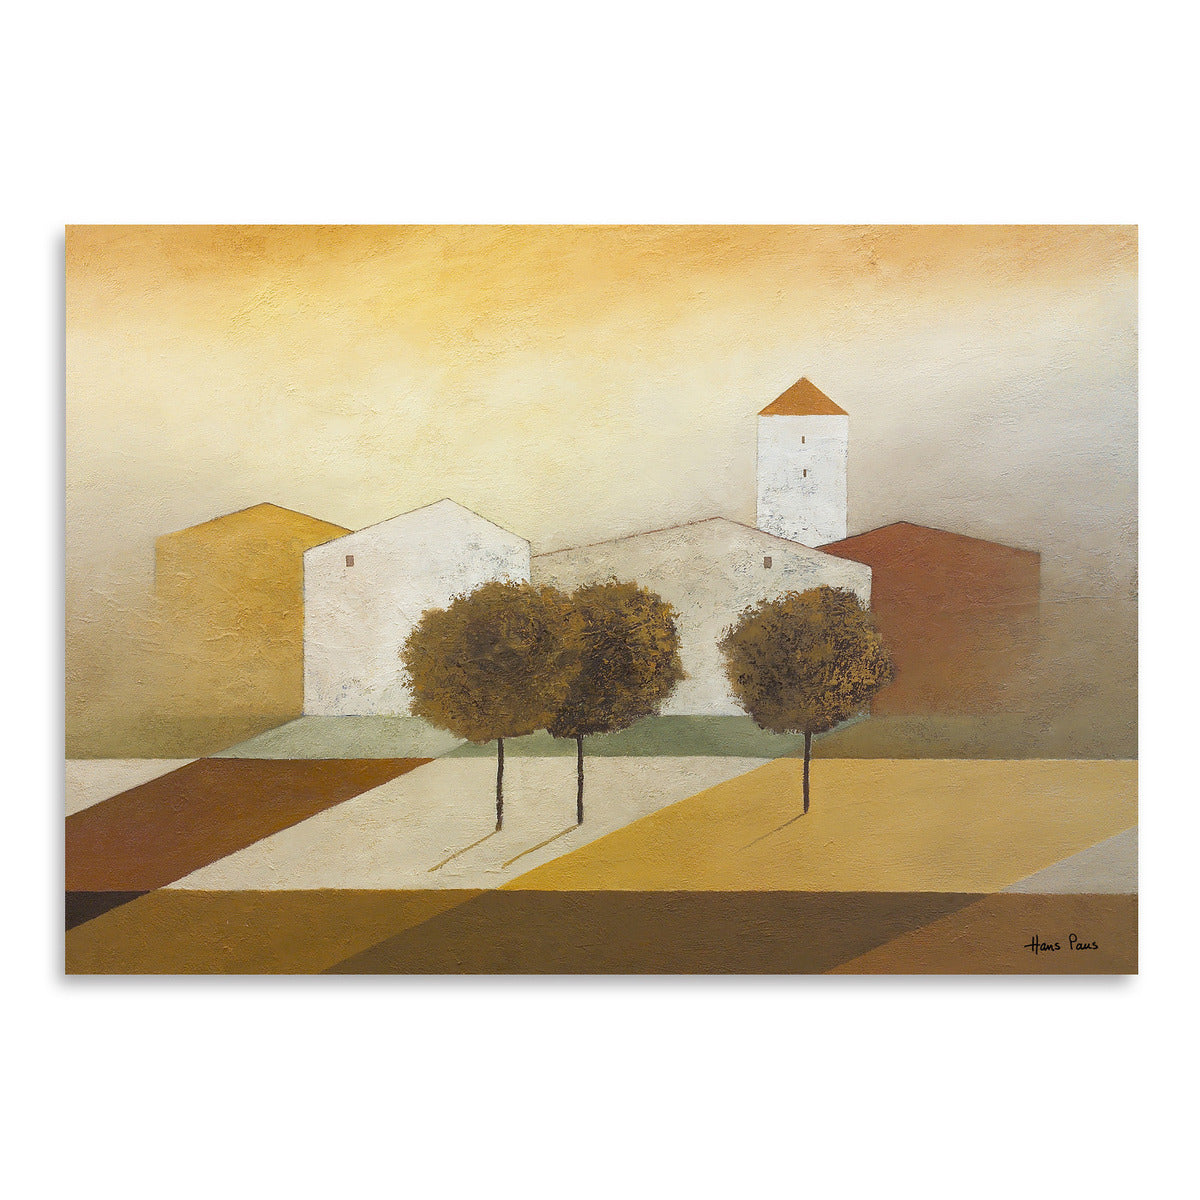 Tuscany 4 by Hans Paus - Art Print - Americanflat